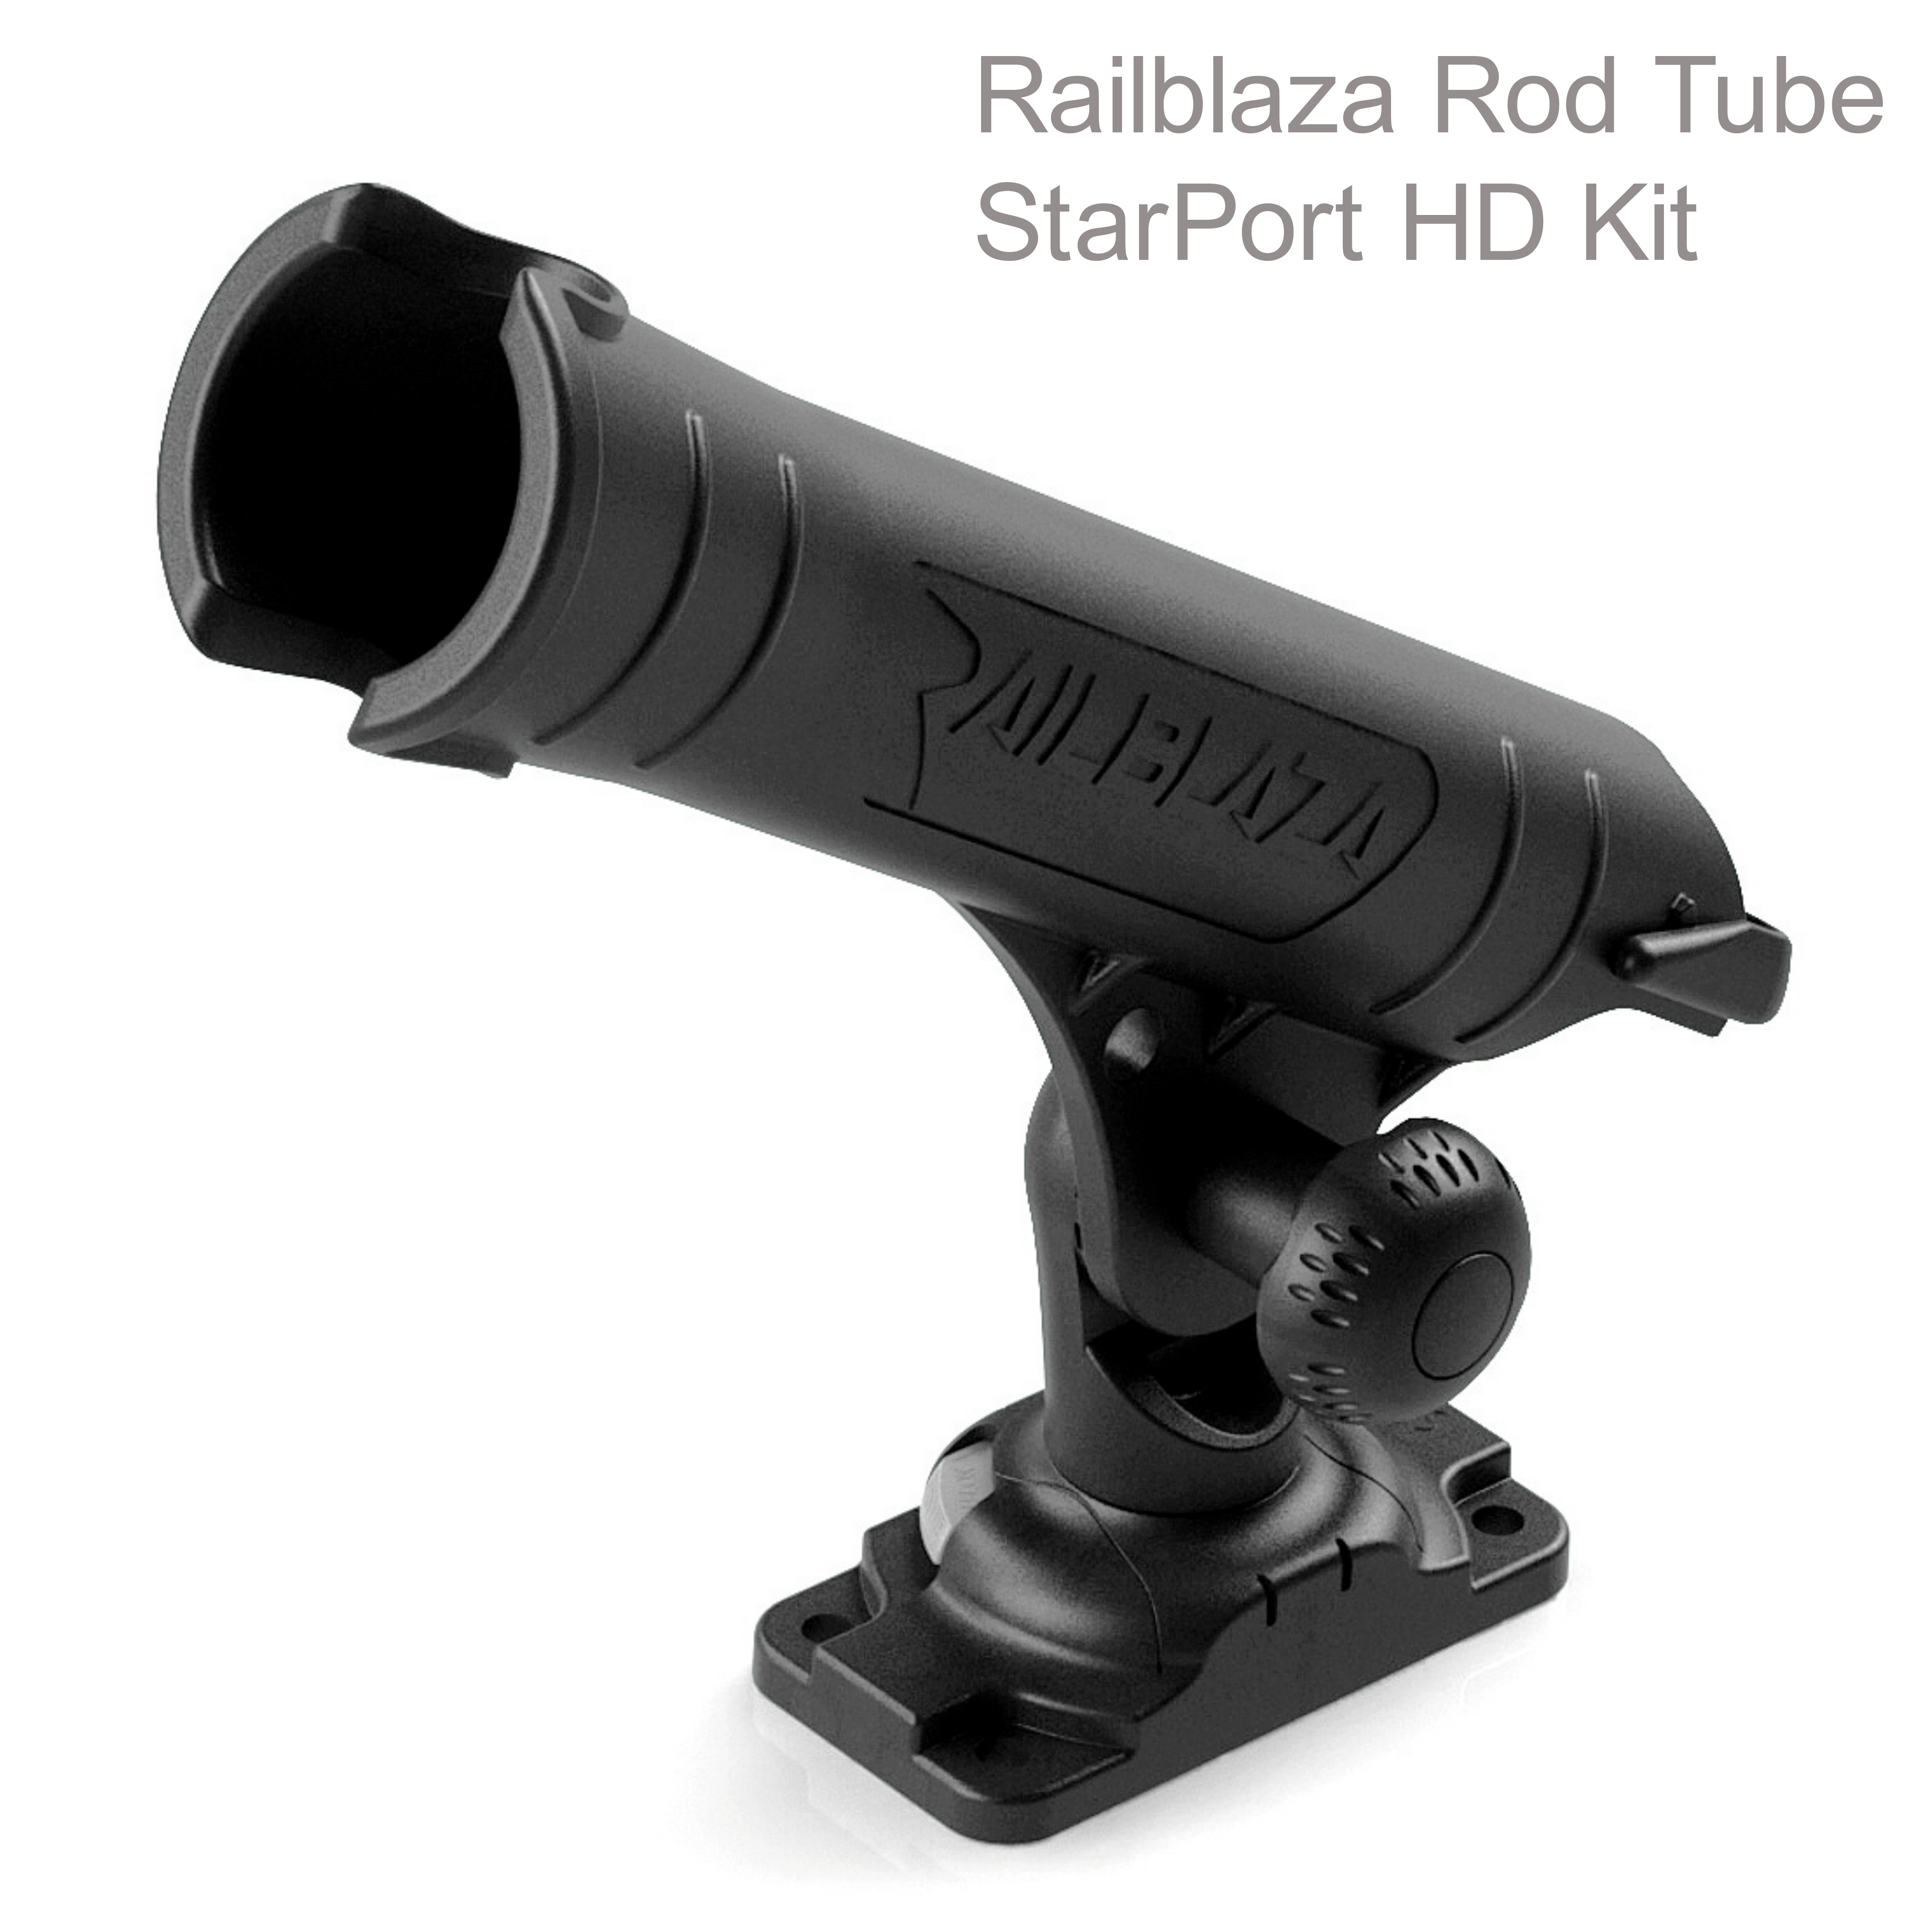 Railblaza Rod Tube StarPort HD Kit - Black|Adjustable|Removable|For Boat Kayak